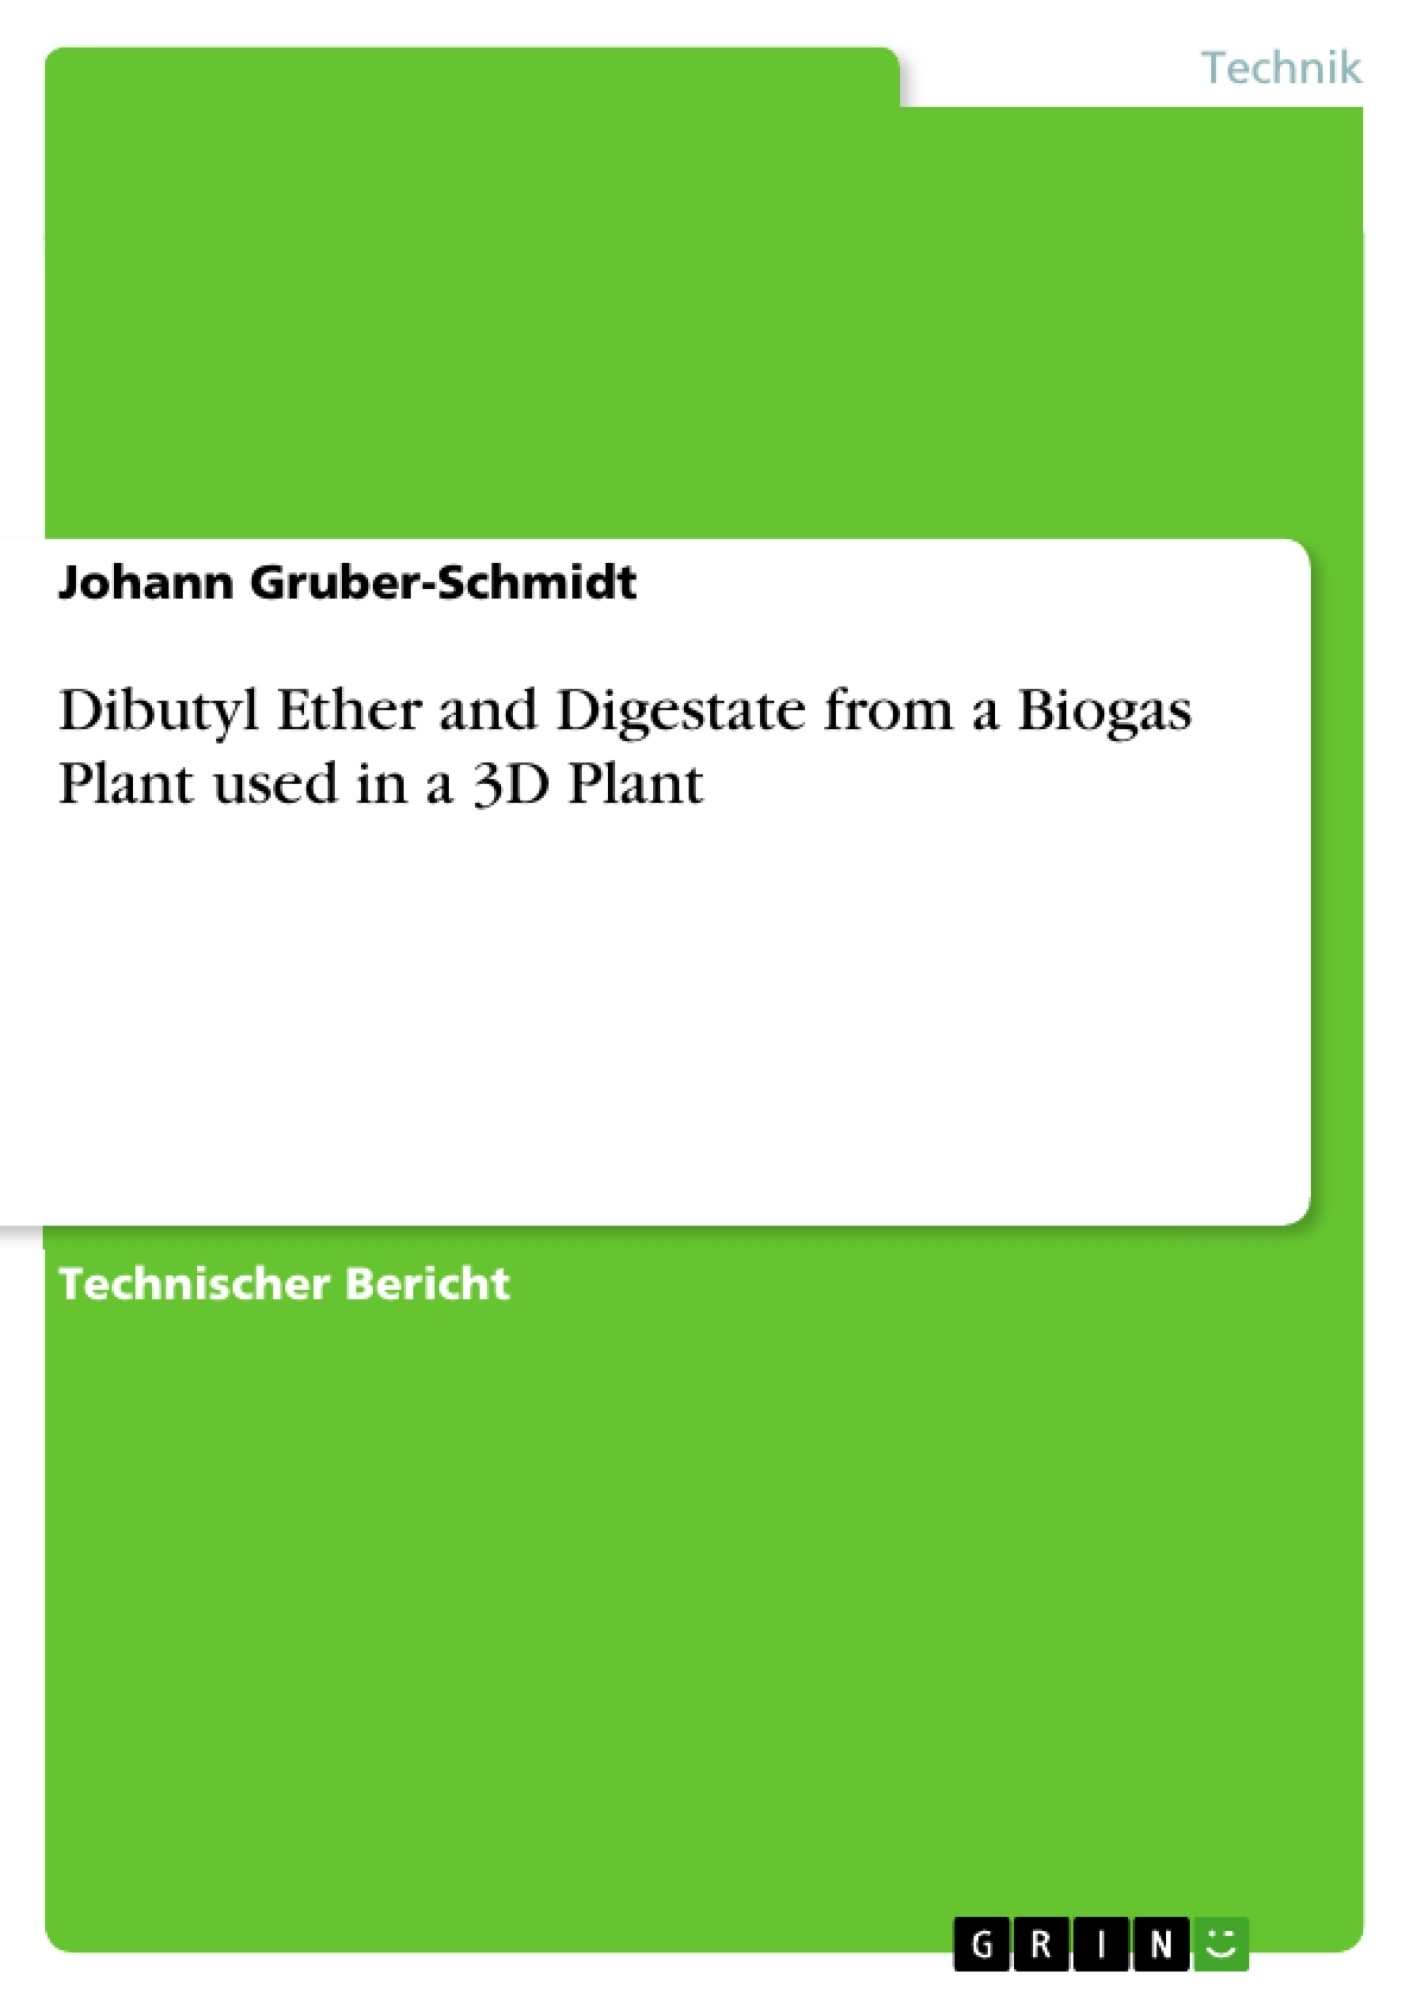 Titel: Dibutyl Ether and Digestate from a Biogas Plant used in a 3D Plant